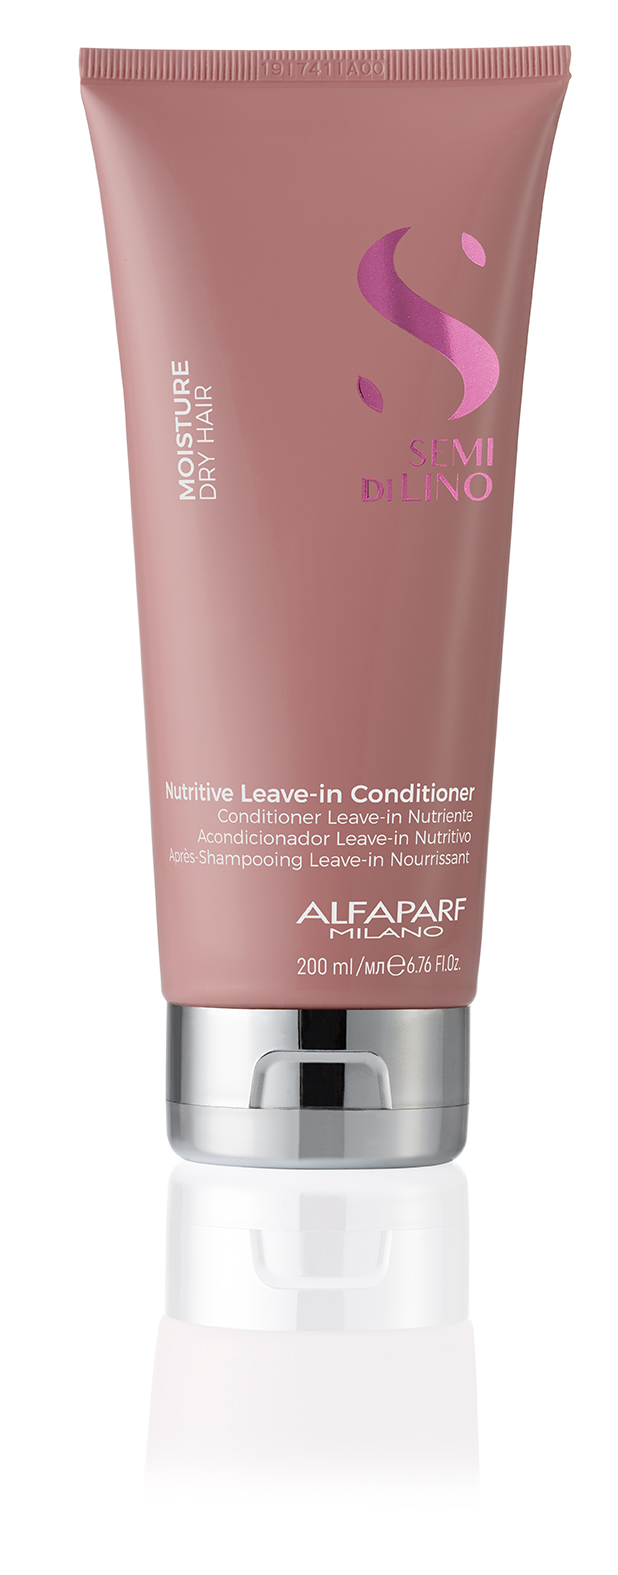 NUTRITIVE LEAVE-IN CONDITIONER    DESCRIPTION   Softens the hair fiber Improves combability   FORMAT   Tube 200ml